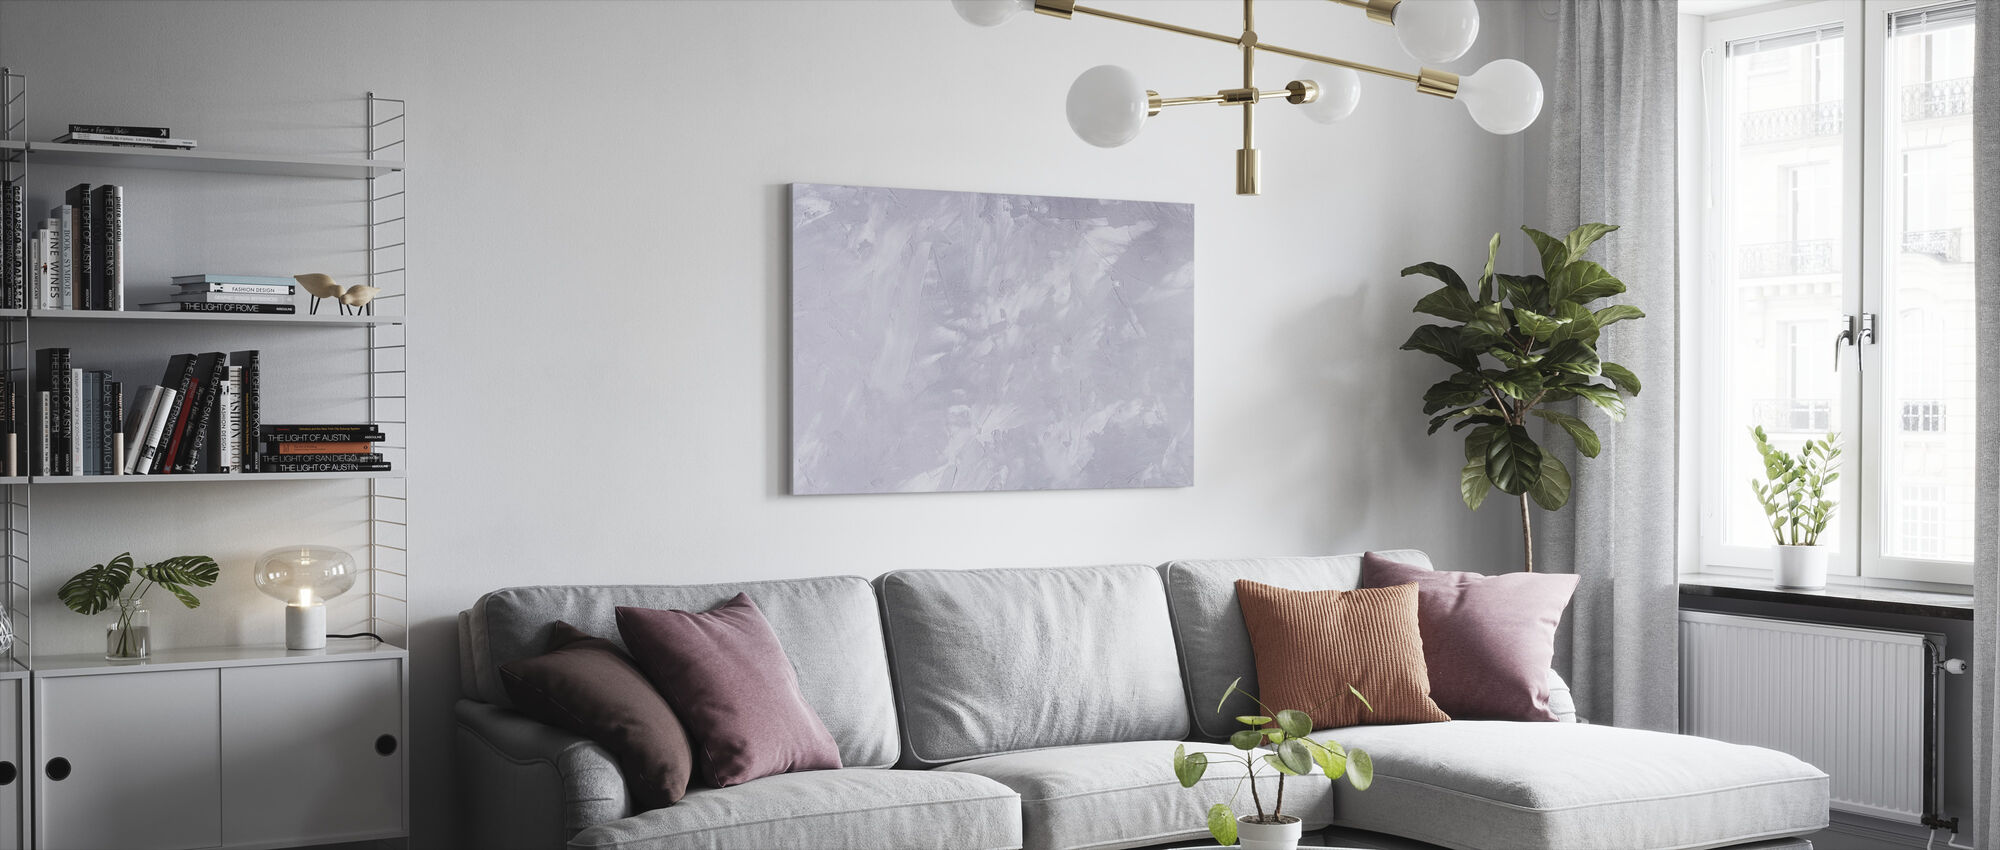 Scratched Concrete Wall - Canvas print - Living Room